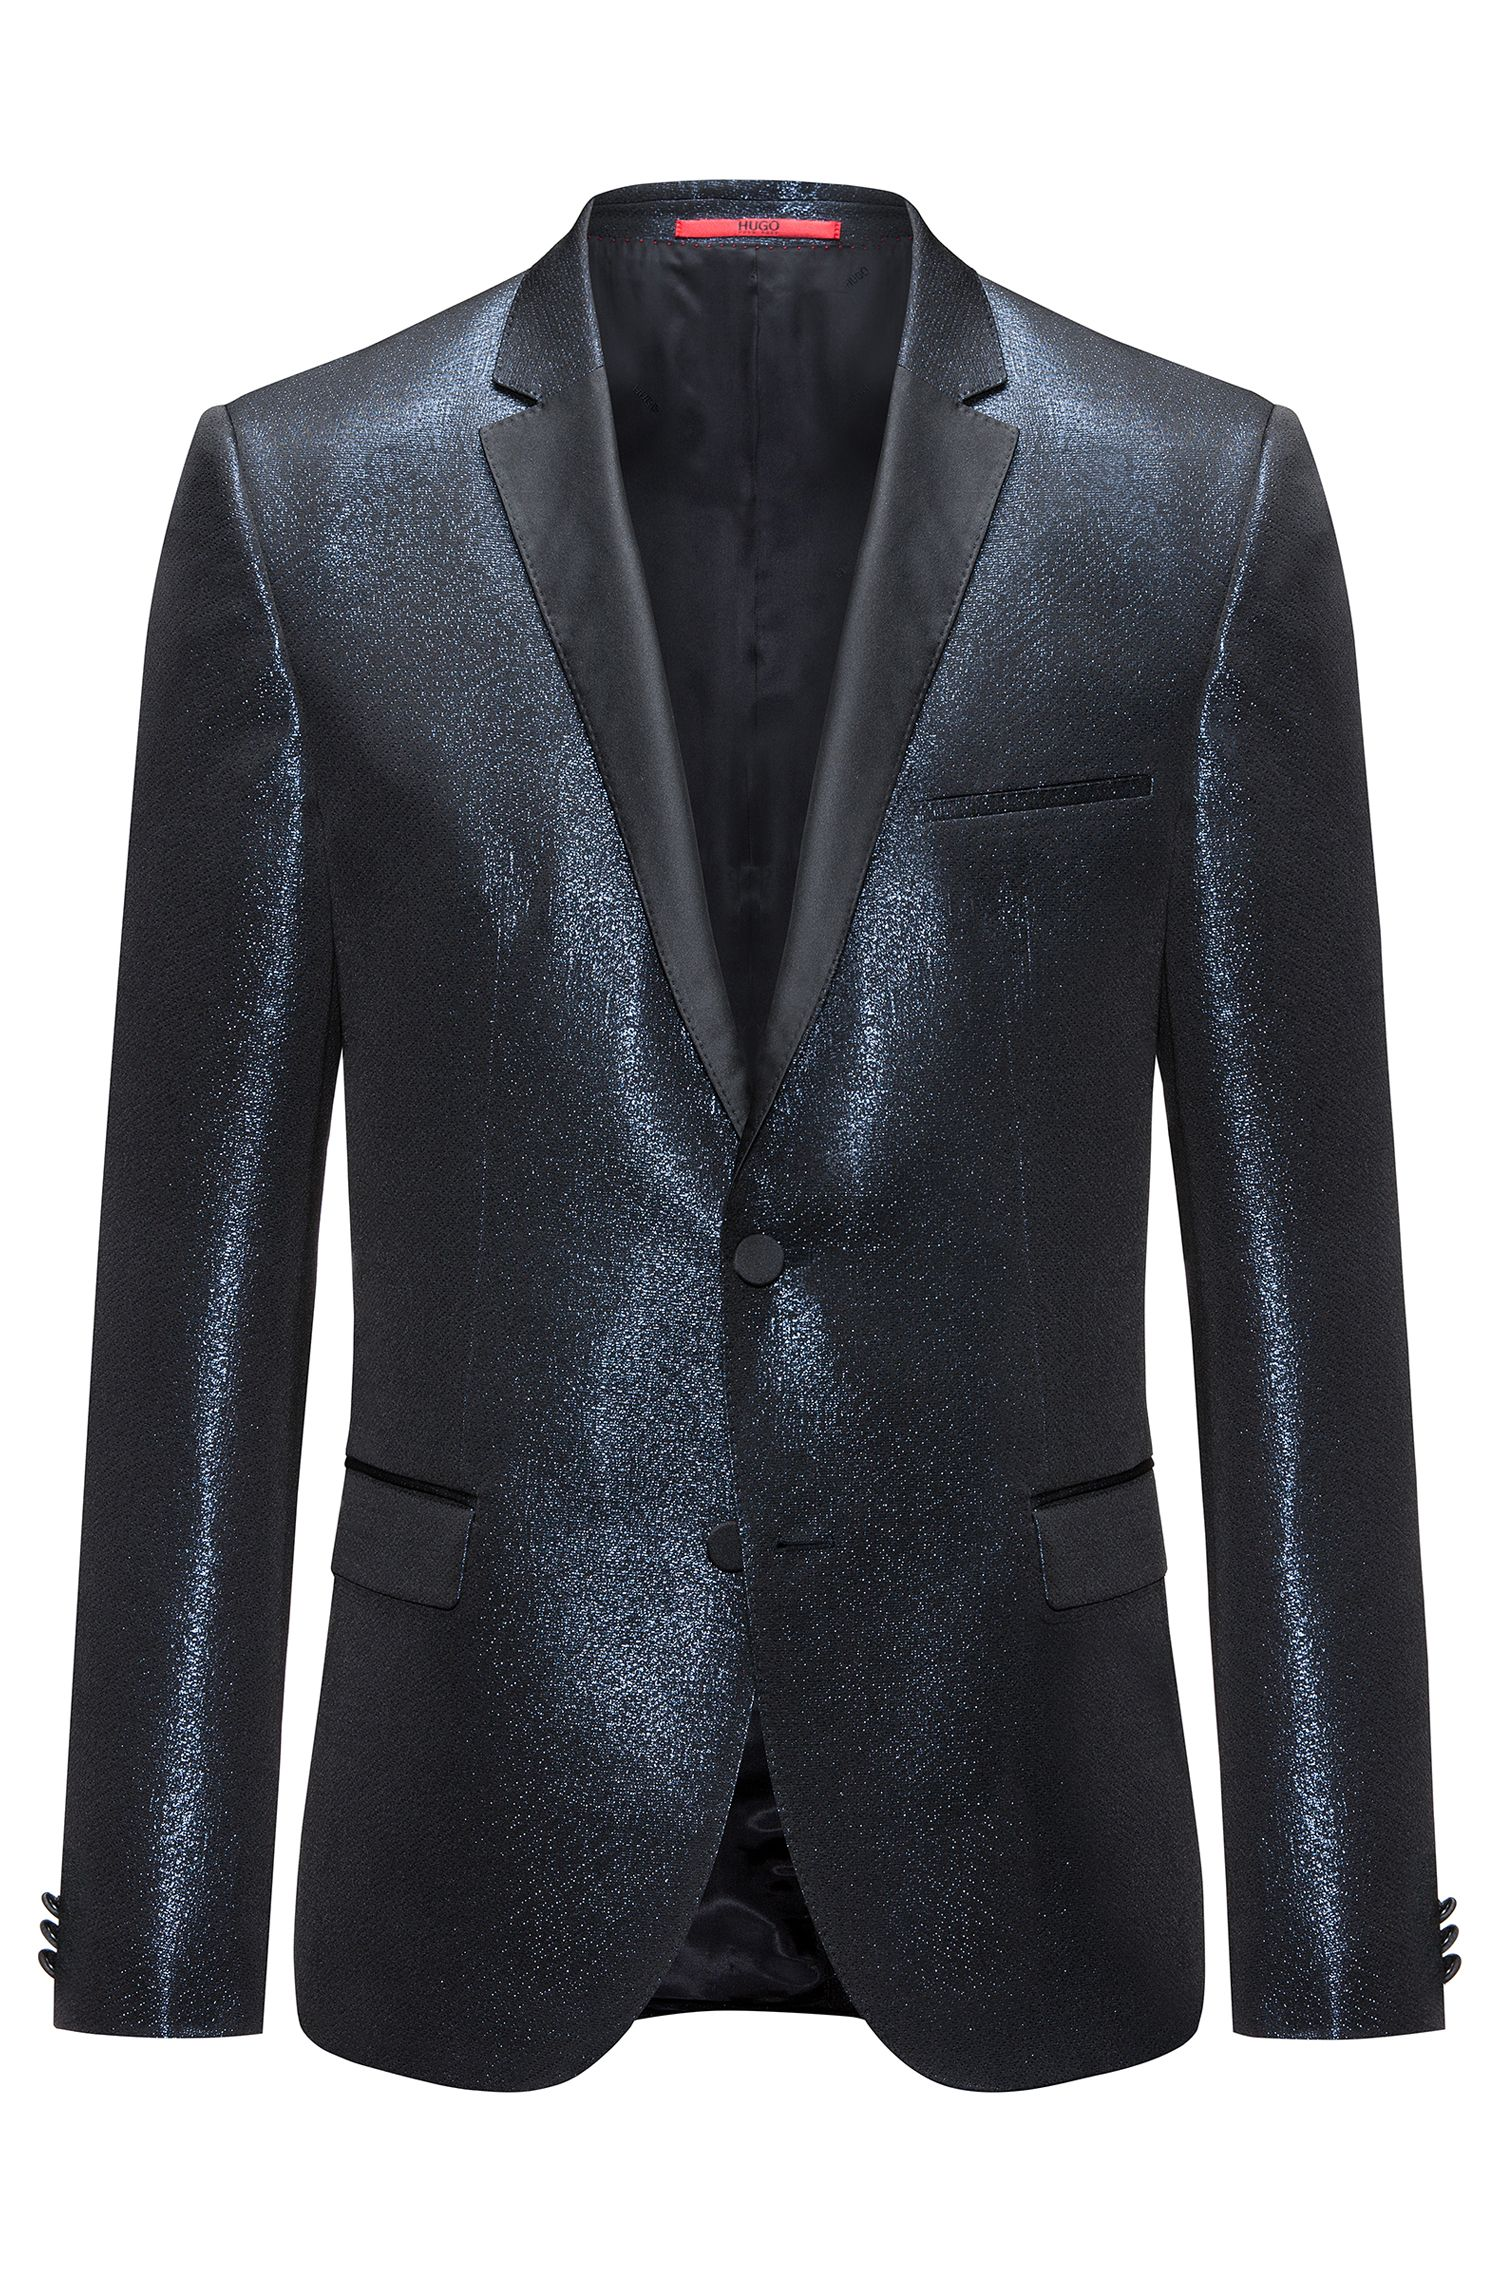 Metallic Sport Coat. Extra Slim Fit | Artins